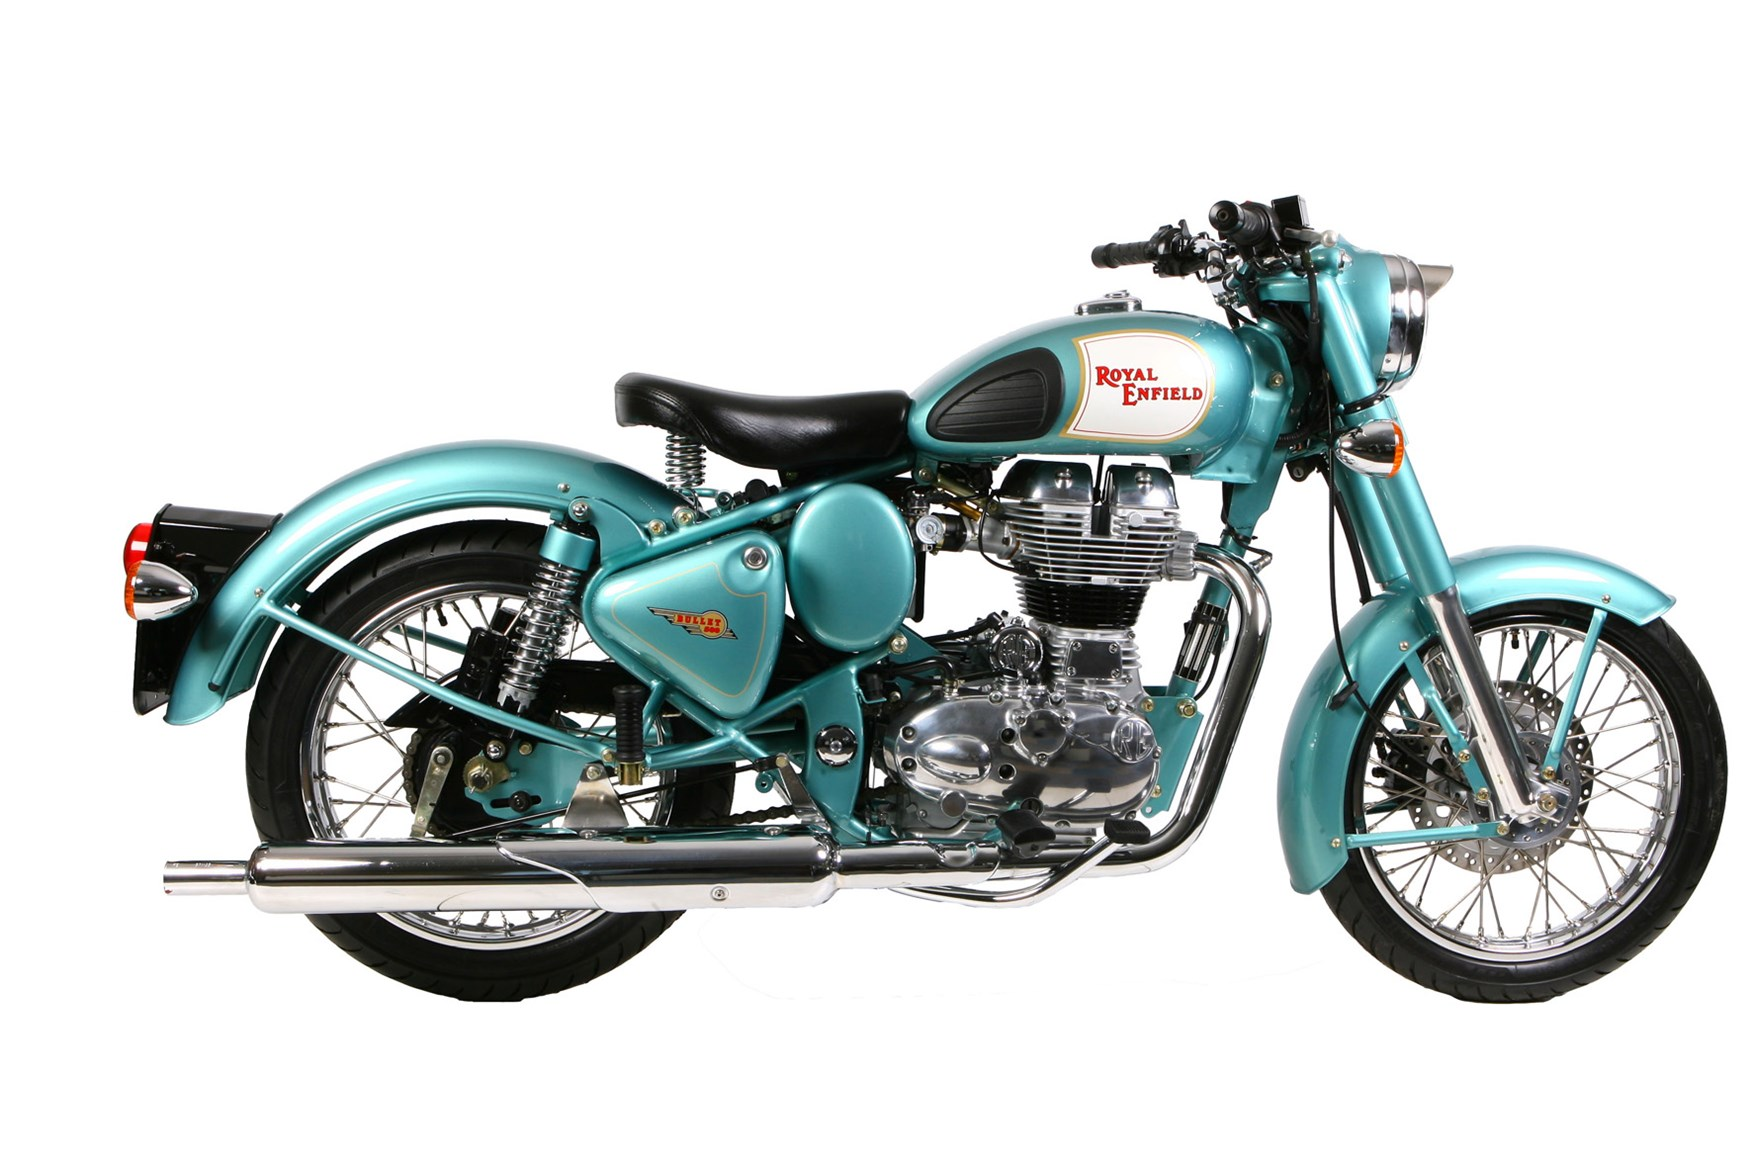 Enfield US Classic 500 #8